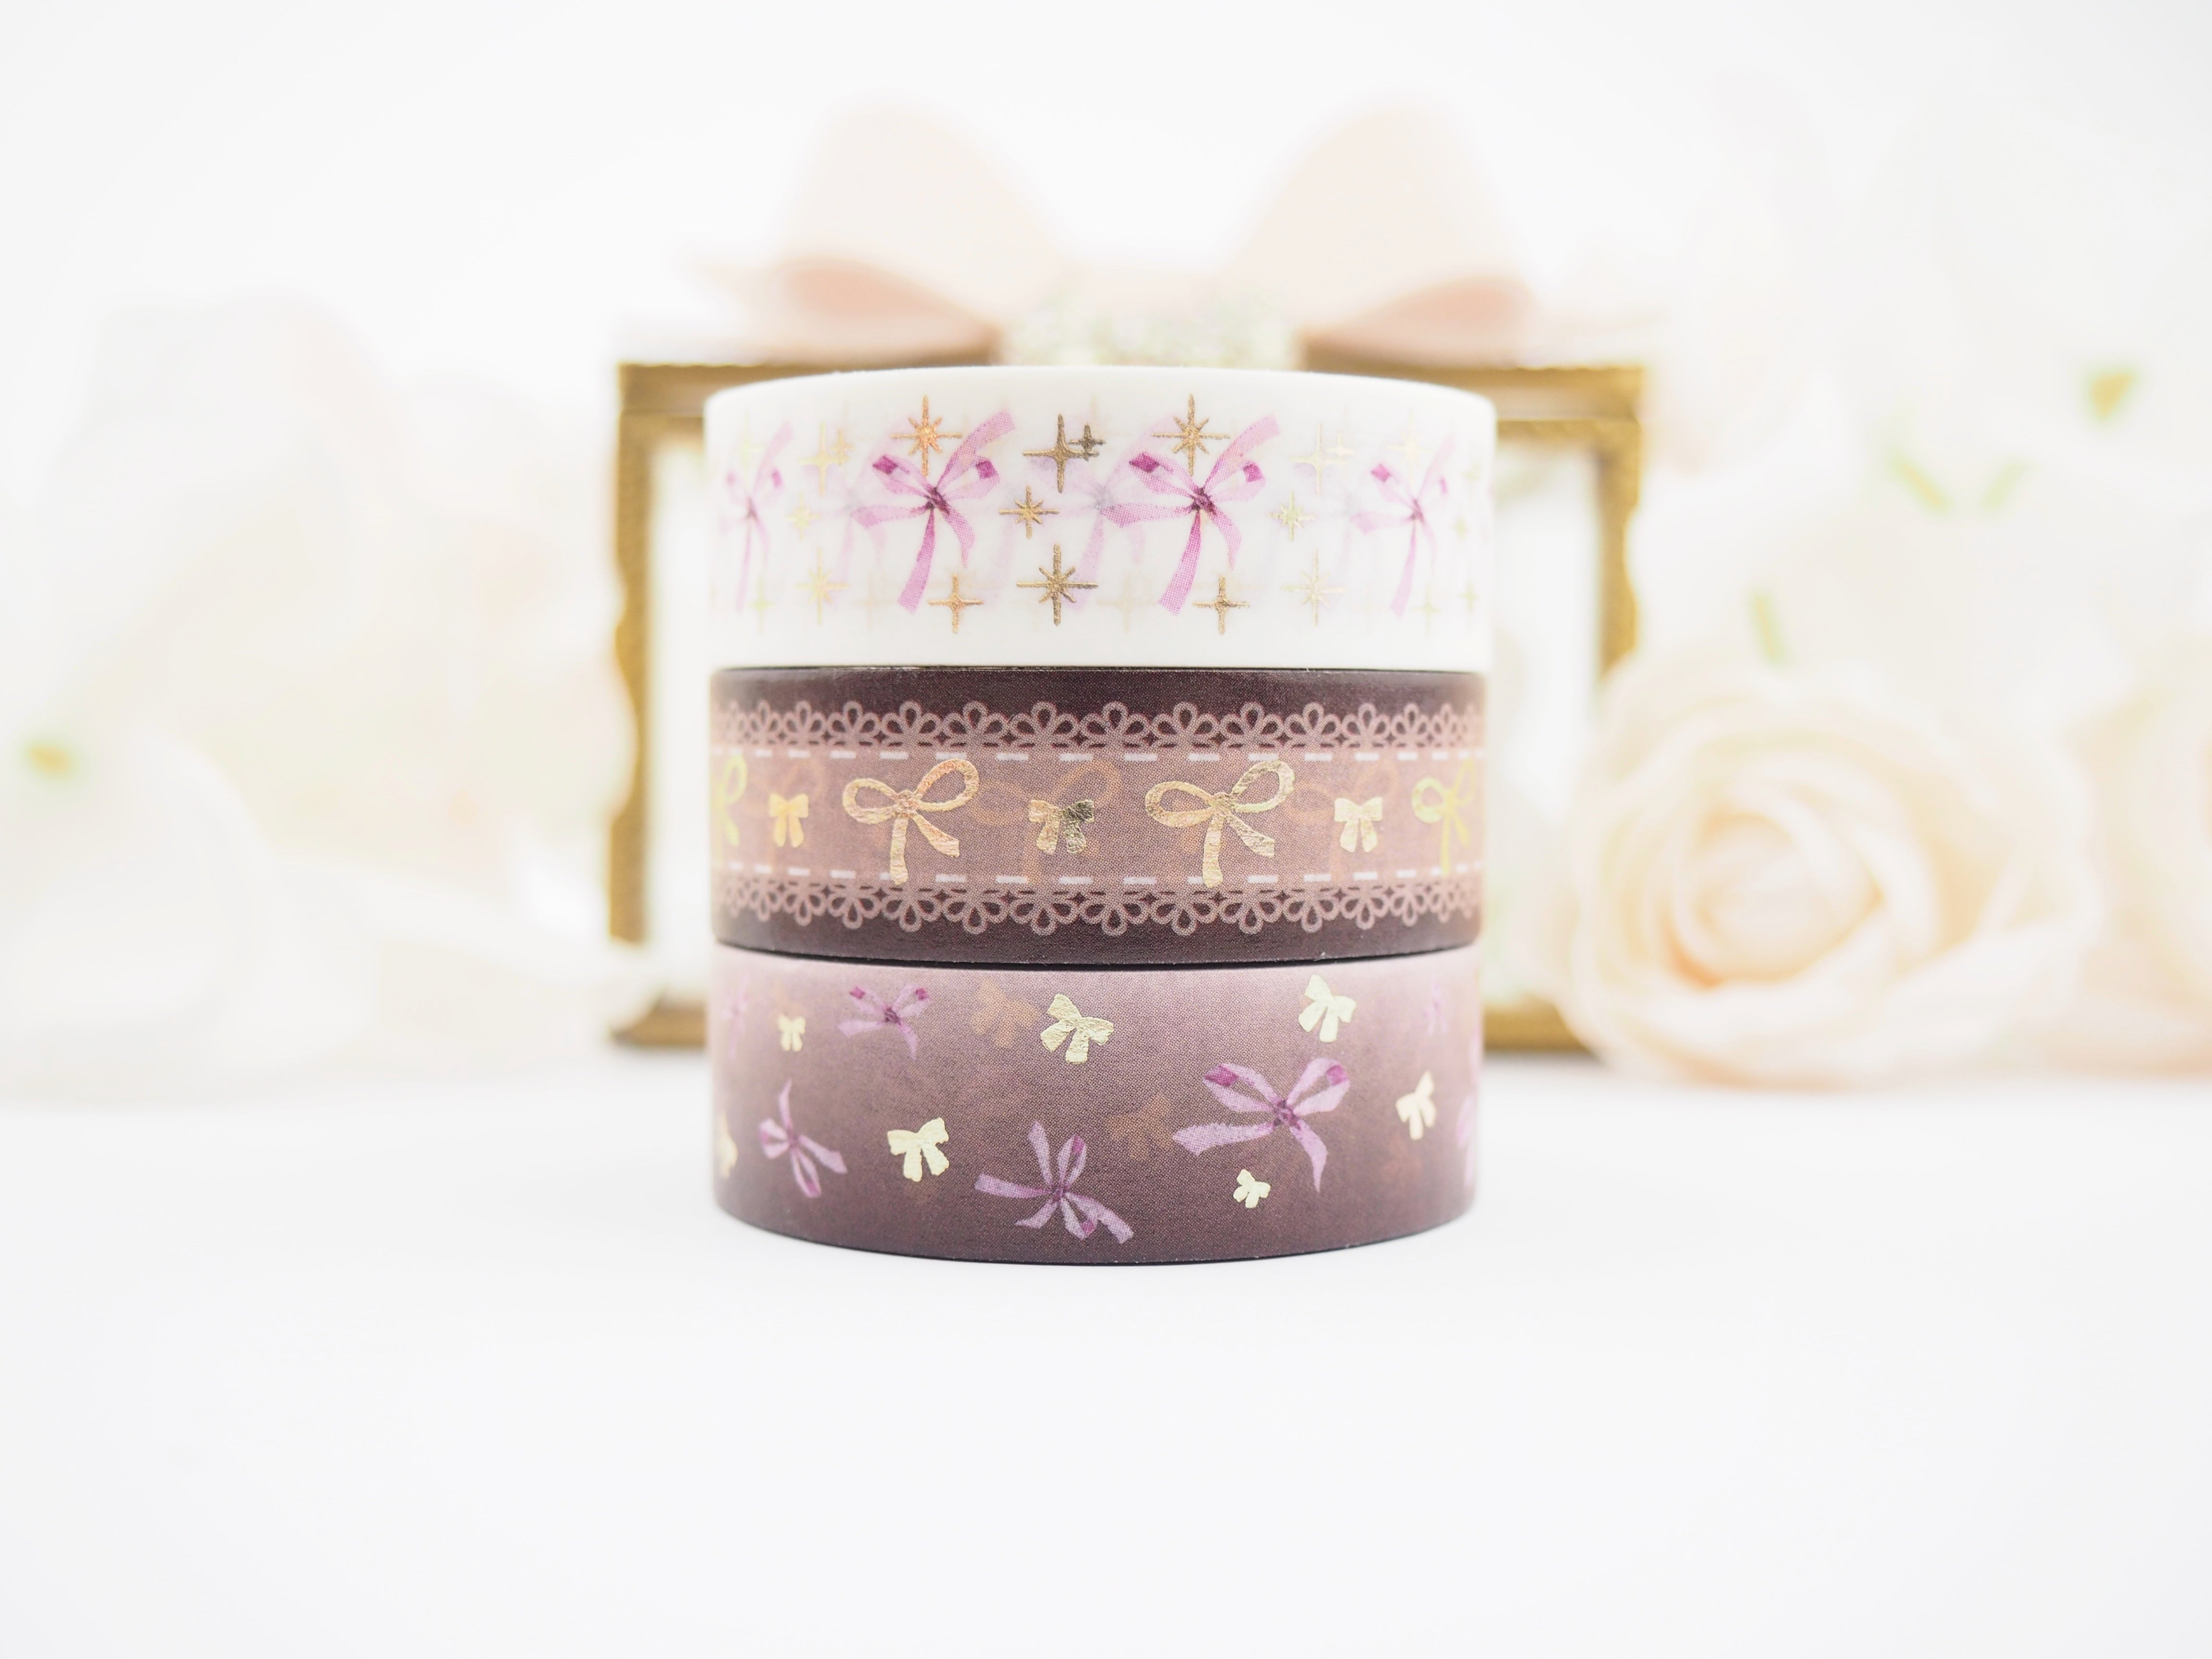 Studio Signet Collab Washi Collection  Limited Edition - The Pink Room Co Exclusive Original